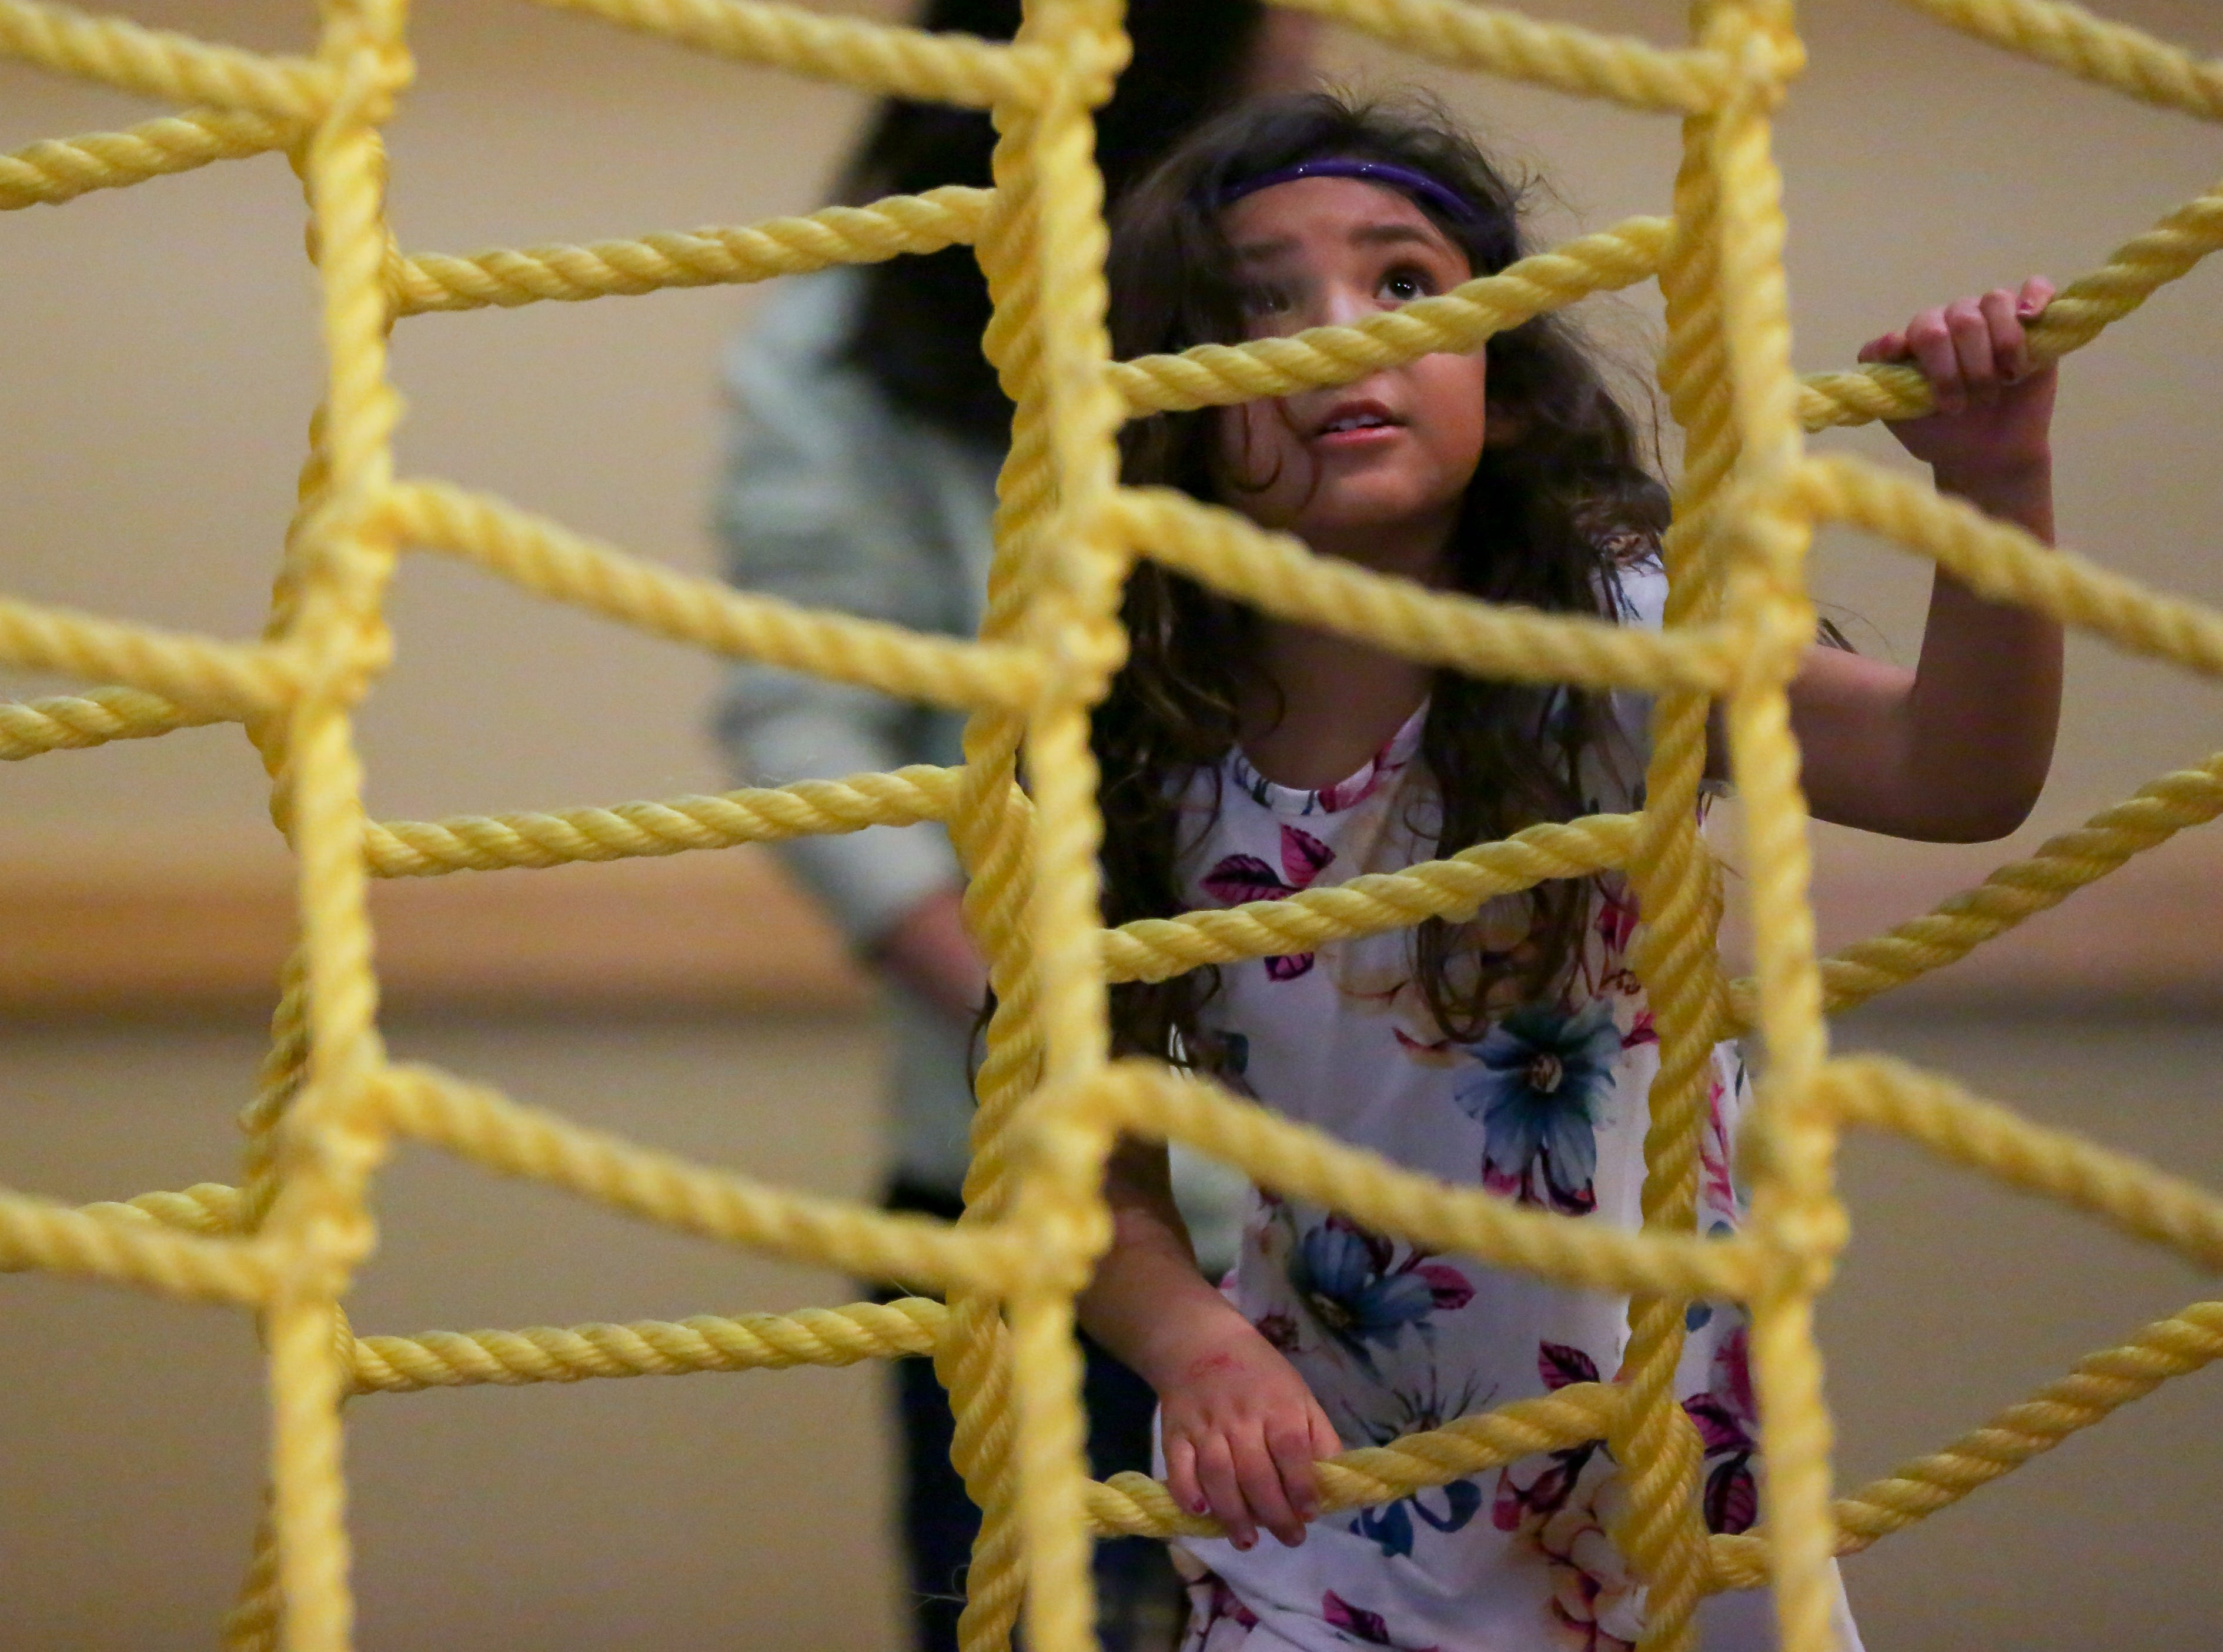 Annais Moreno, 5, climbs a rope latter while playing in an obstacle course on Saturday, Jan. 12, 2019, during the 2019 Mesilla Valley Outdoor Expo at the Las Cruces Convention Center.